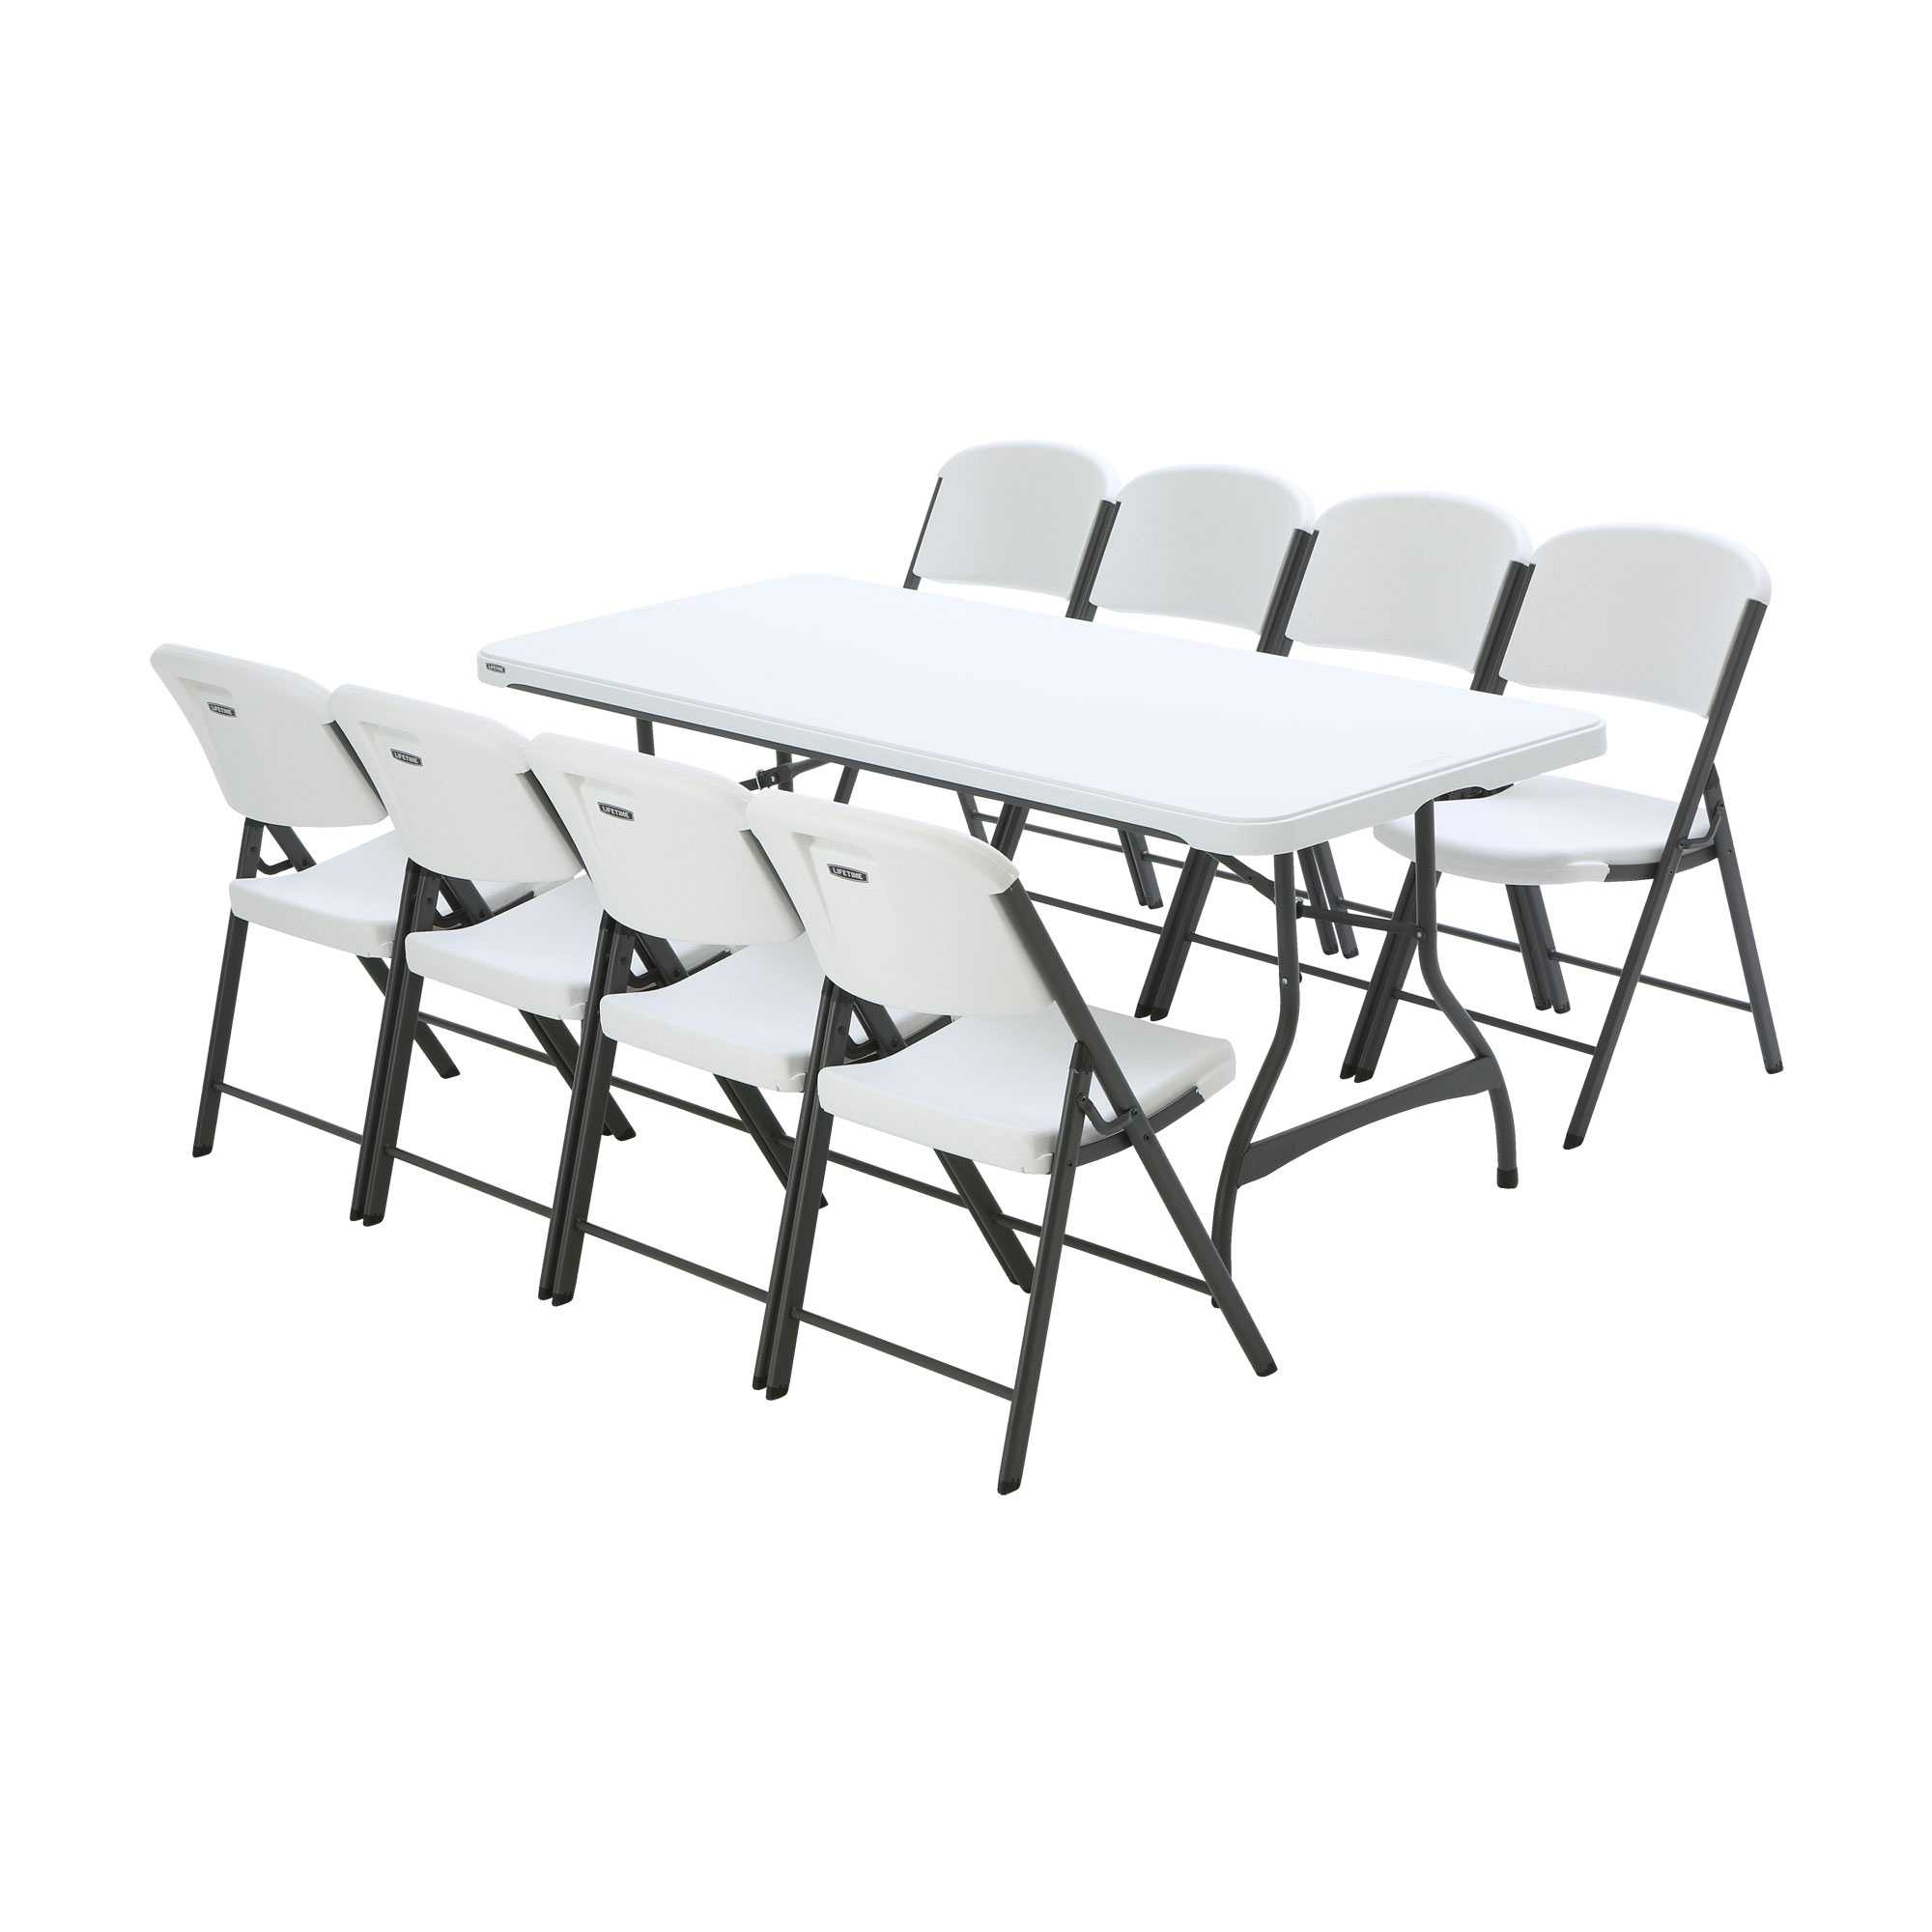 Lifetime 1 Table And 8 Chair Package On Sale With Fast